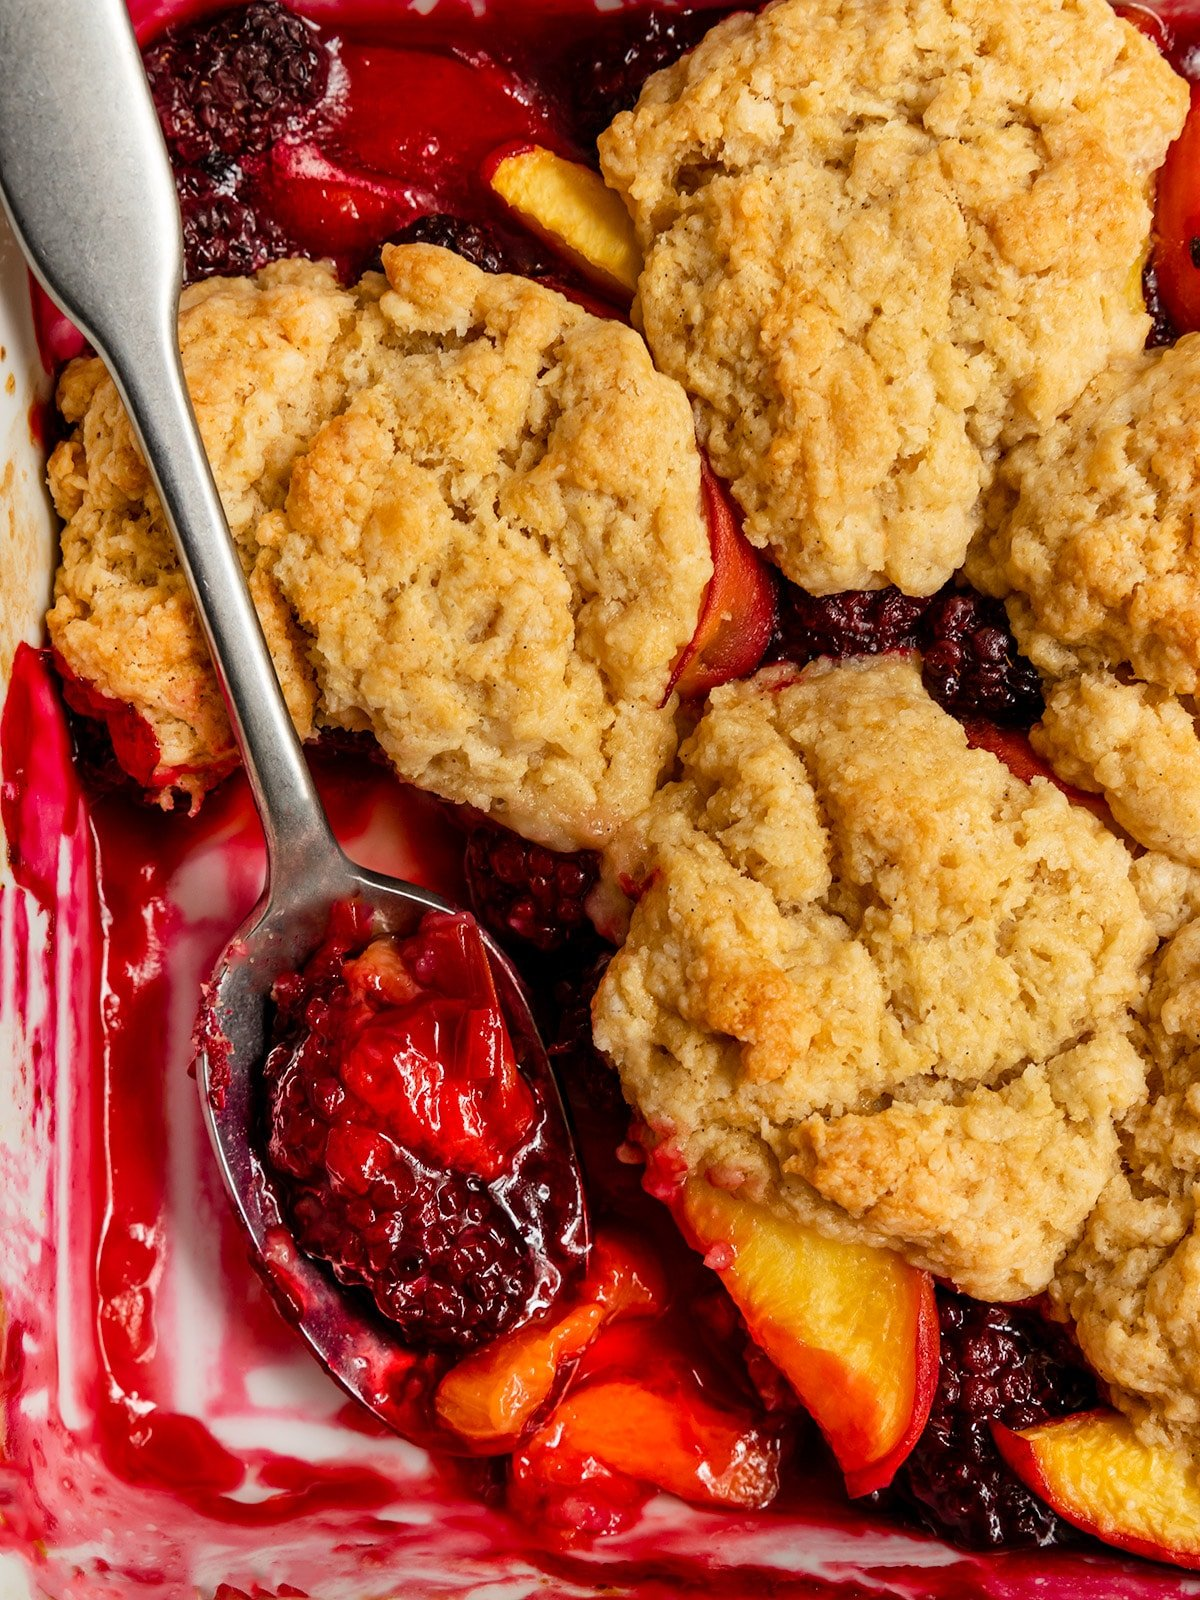 cobbler with peach slices and